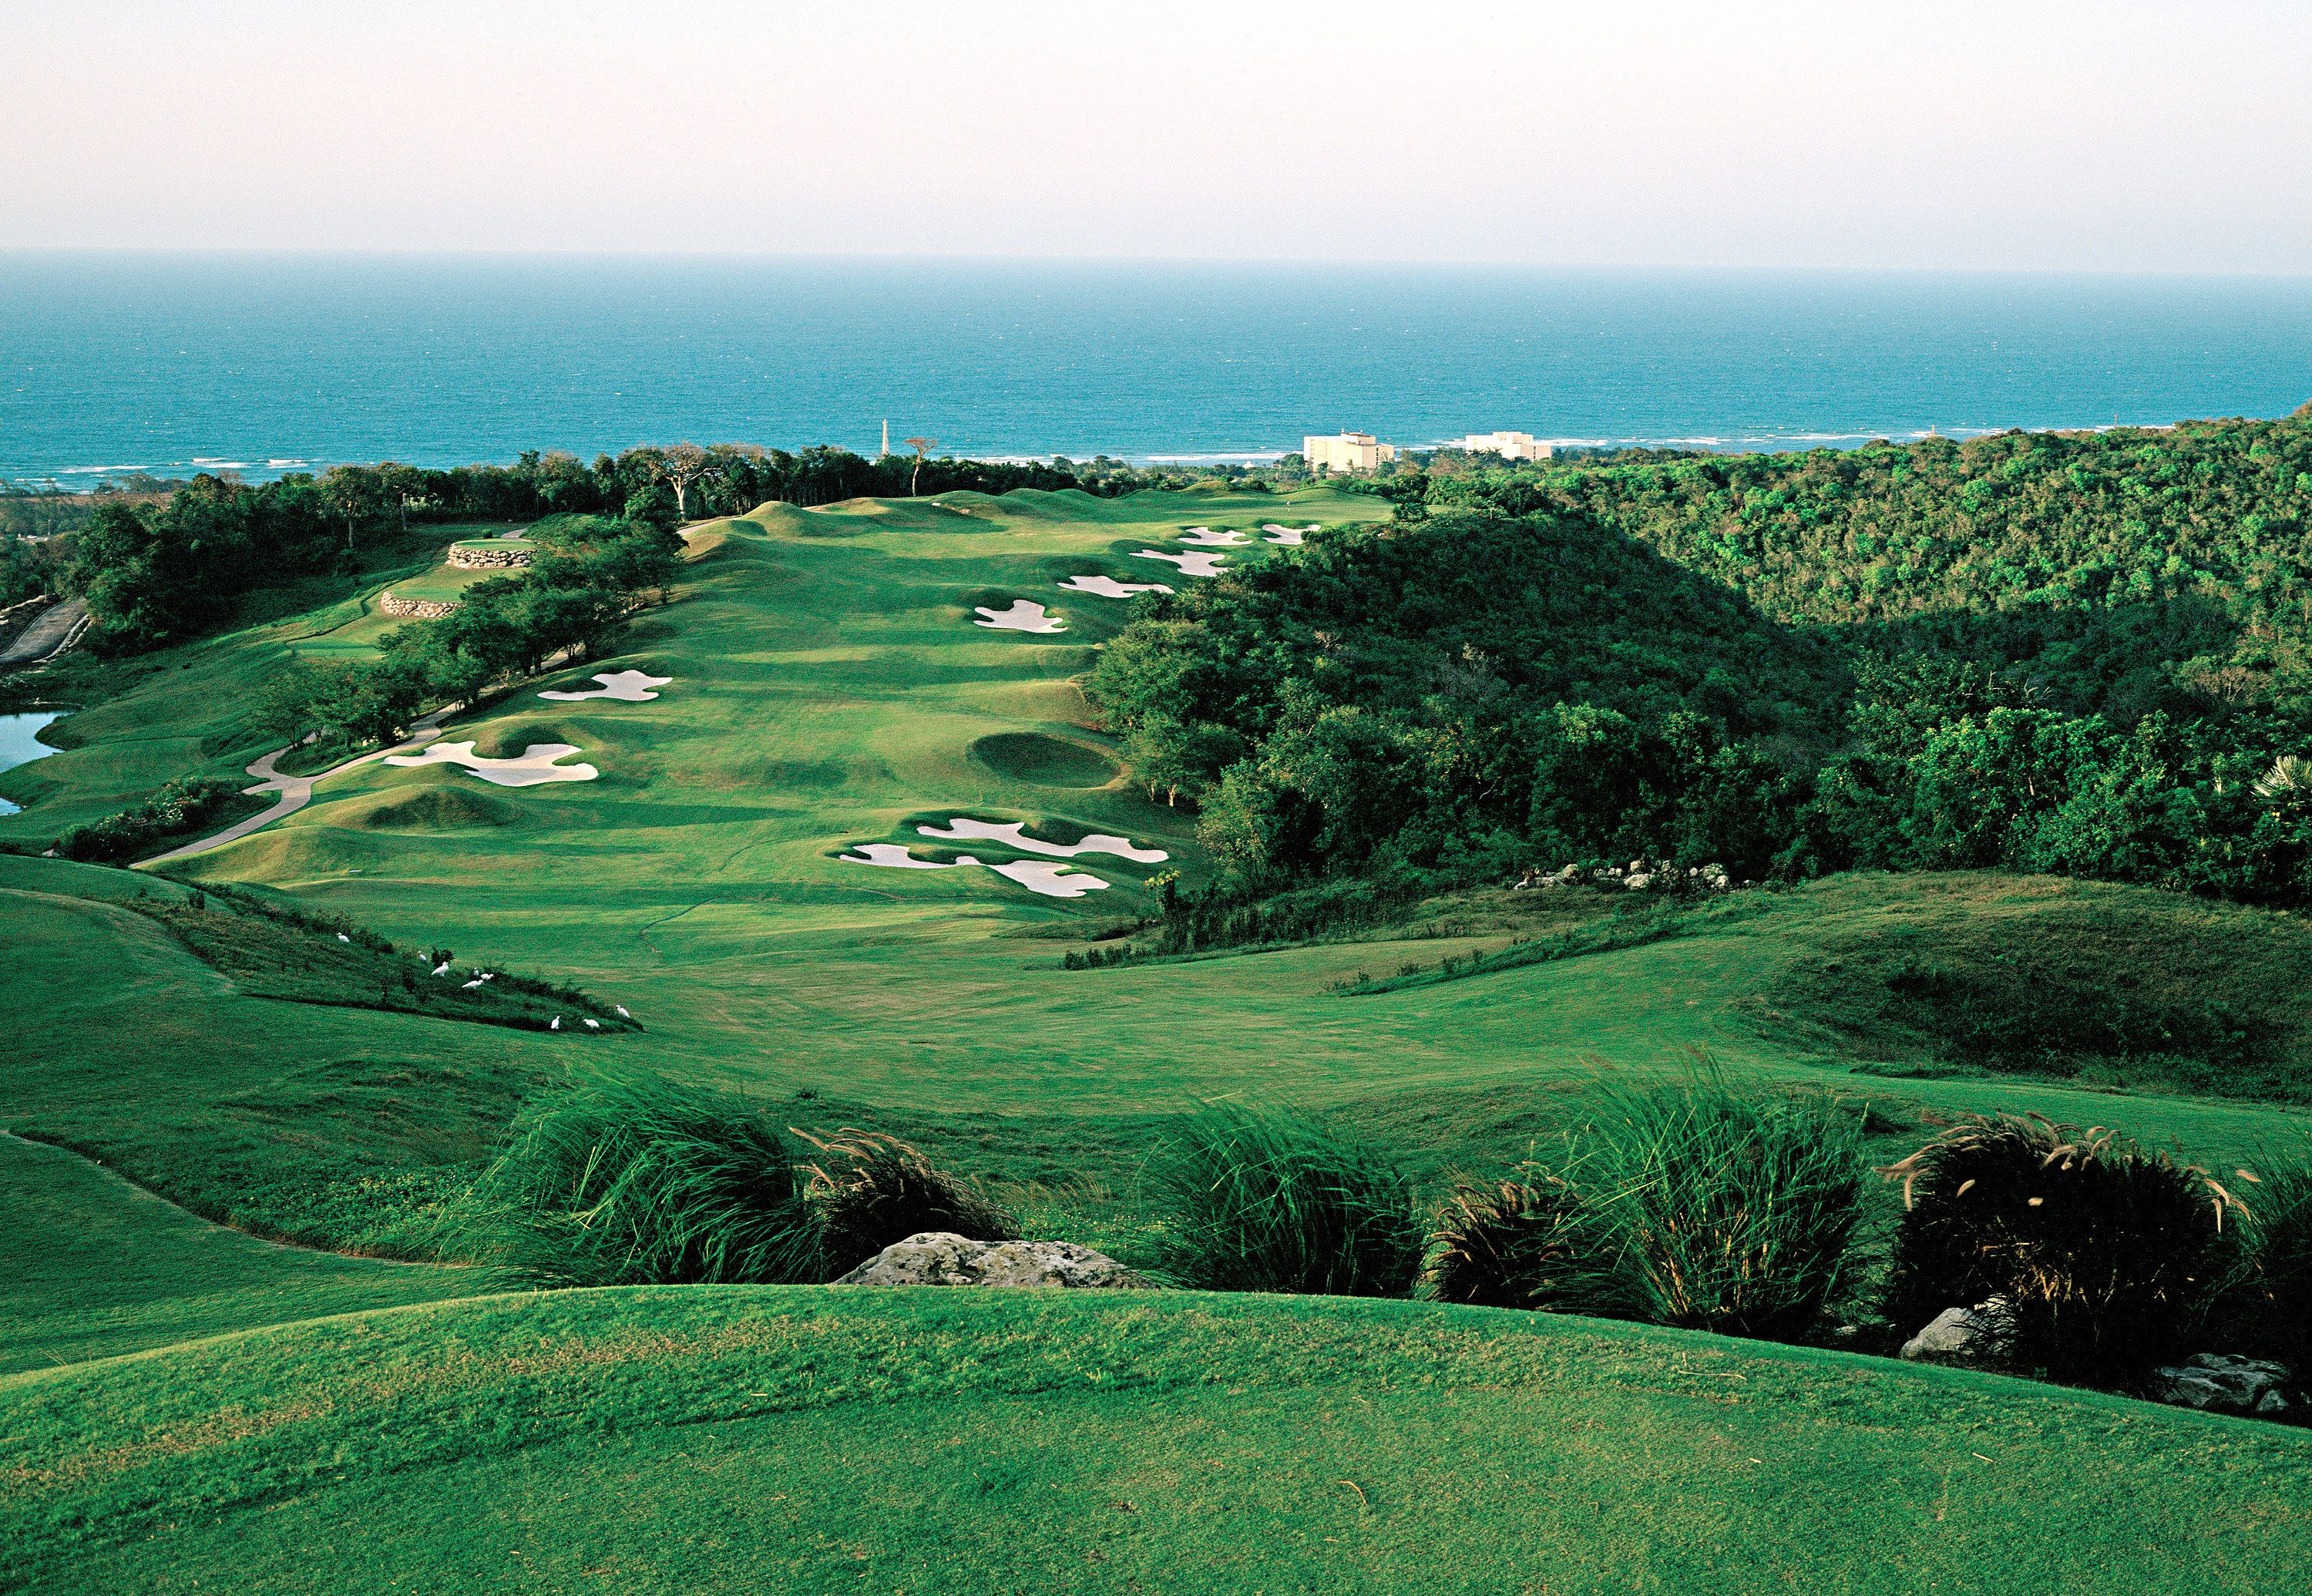 The first hole at White Witch Golf Club in Jamaica.